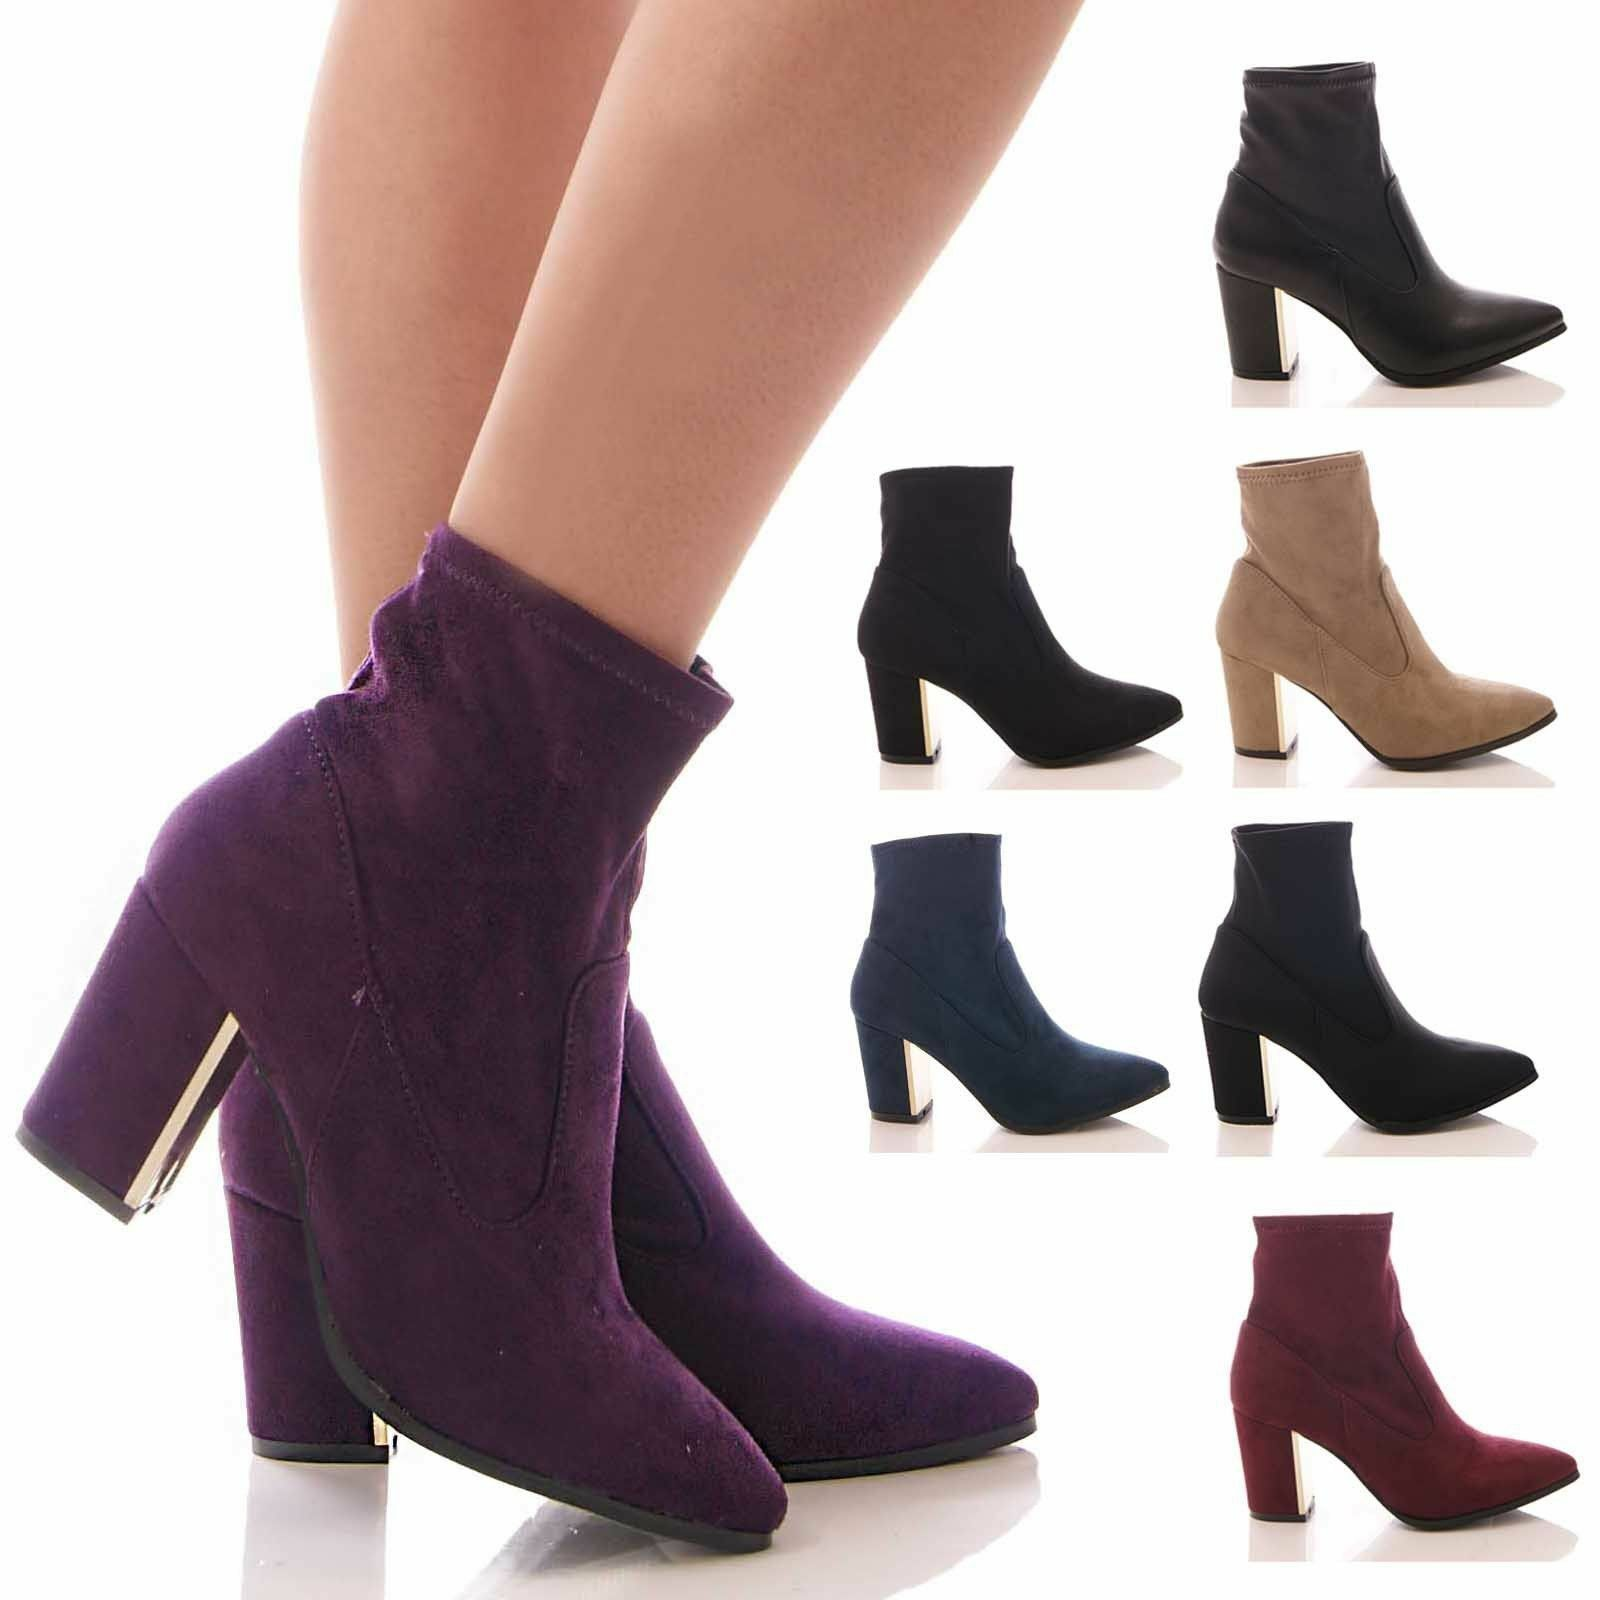 Ladies Women's Winter Ankle Boots Block Heel Gold Plated Stretch Shoes Size 3-8